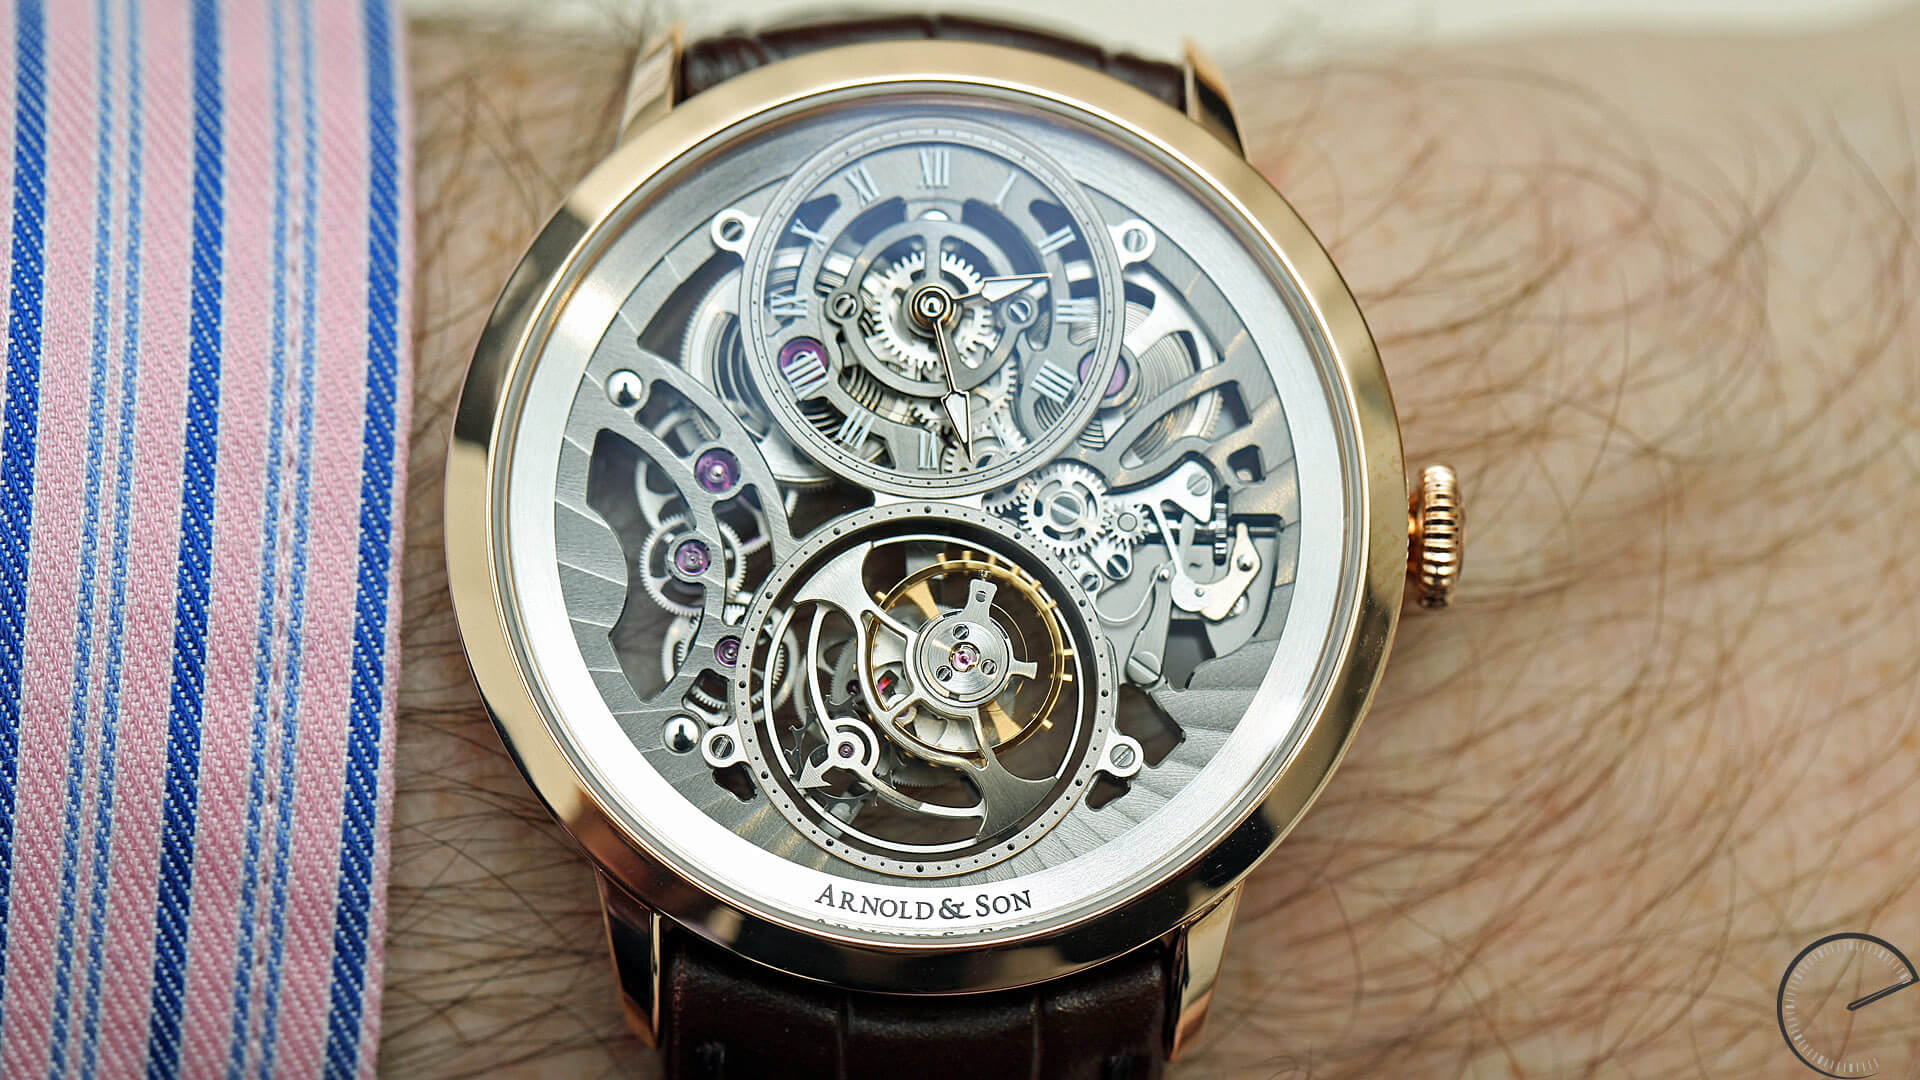 Image of Arnold & Son UTTE Skeleton - ultra-thin tourbillon